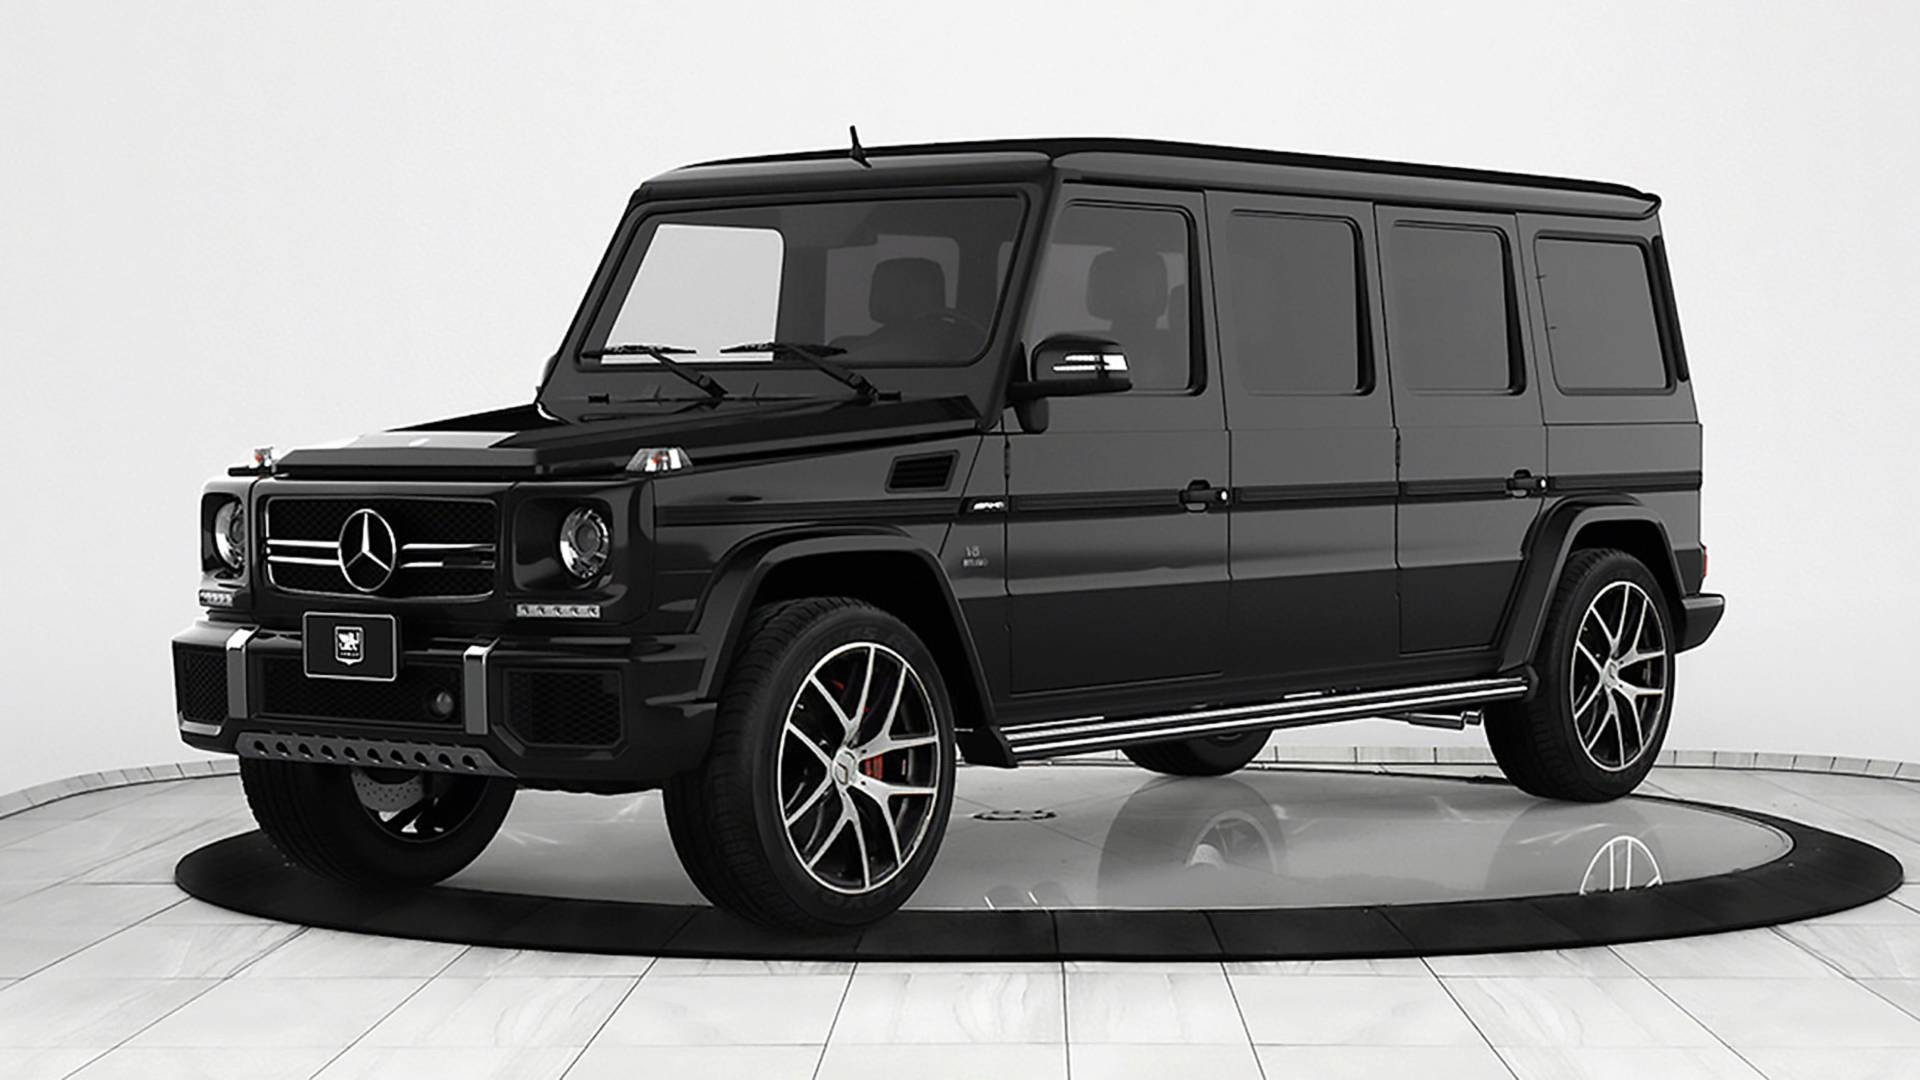 Armored Mercedes-AMG G63 Limo Demands Respect And $1.2 Million